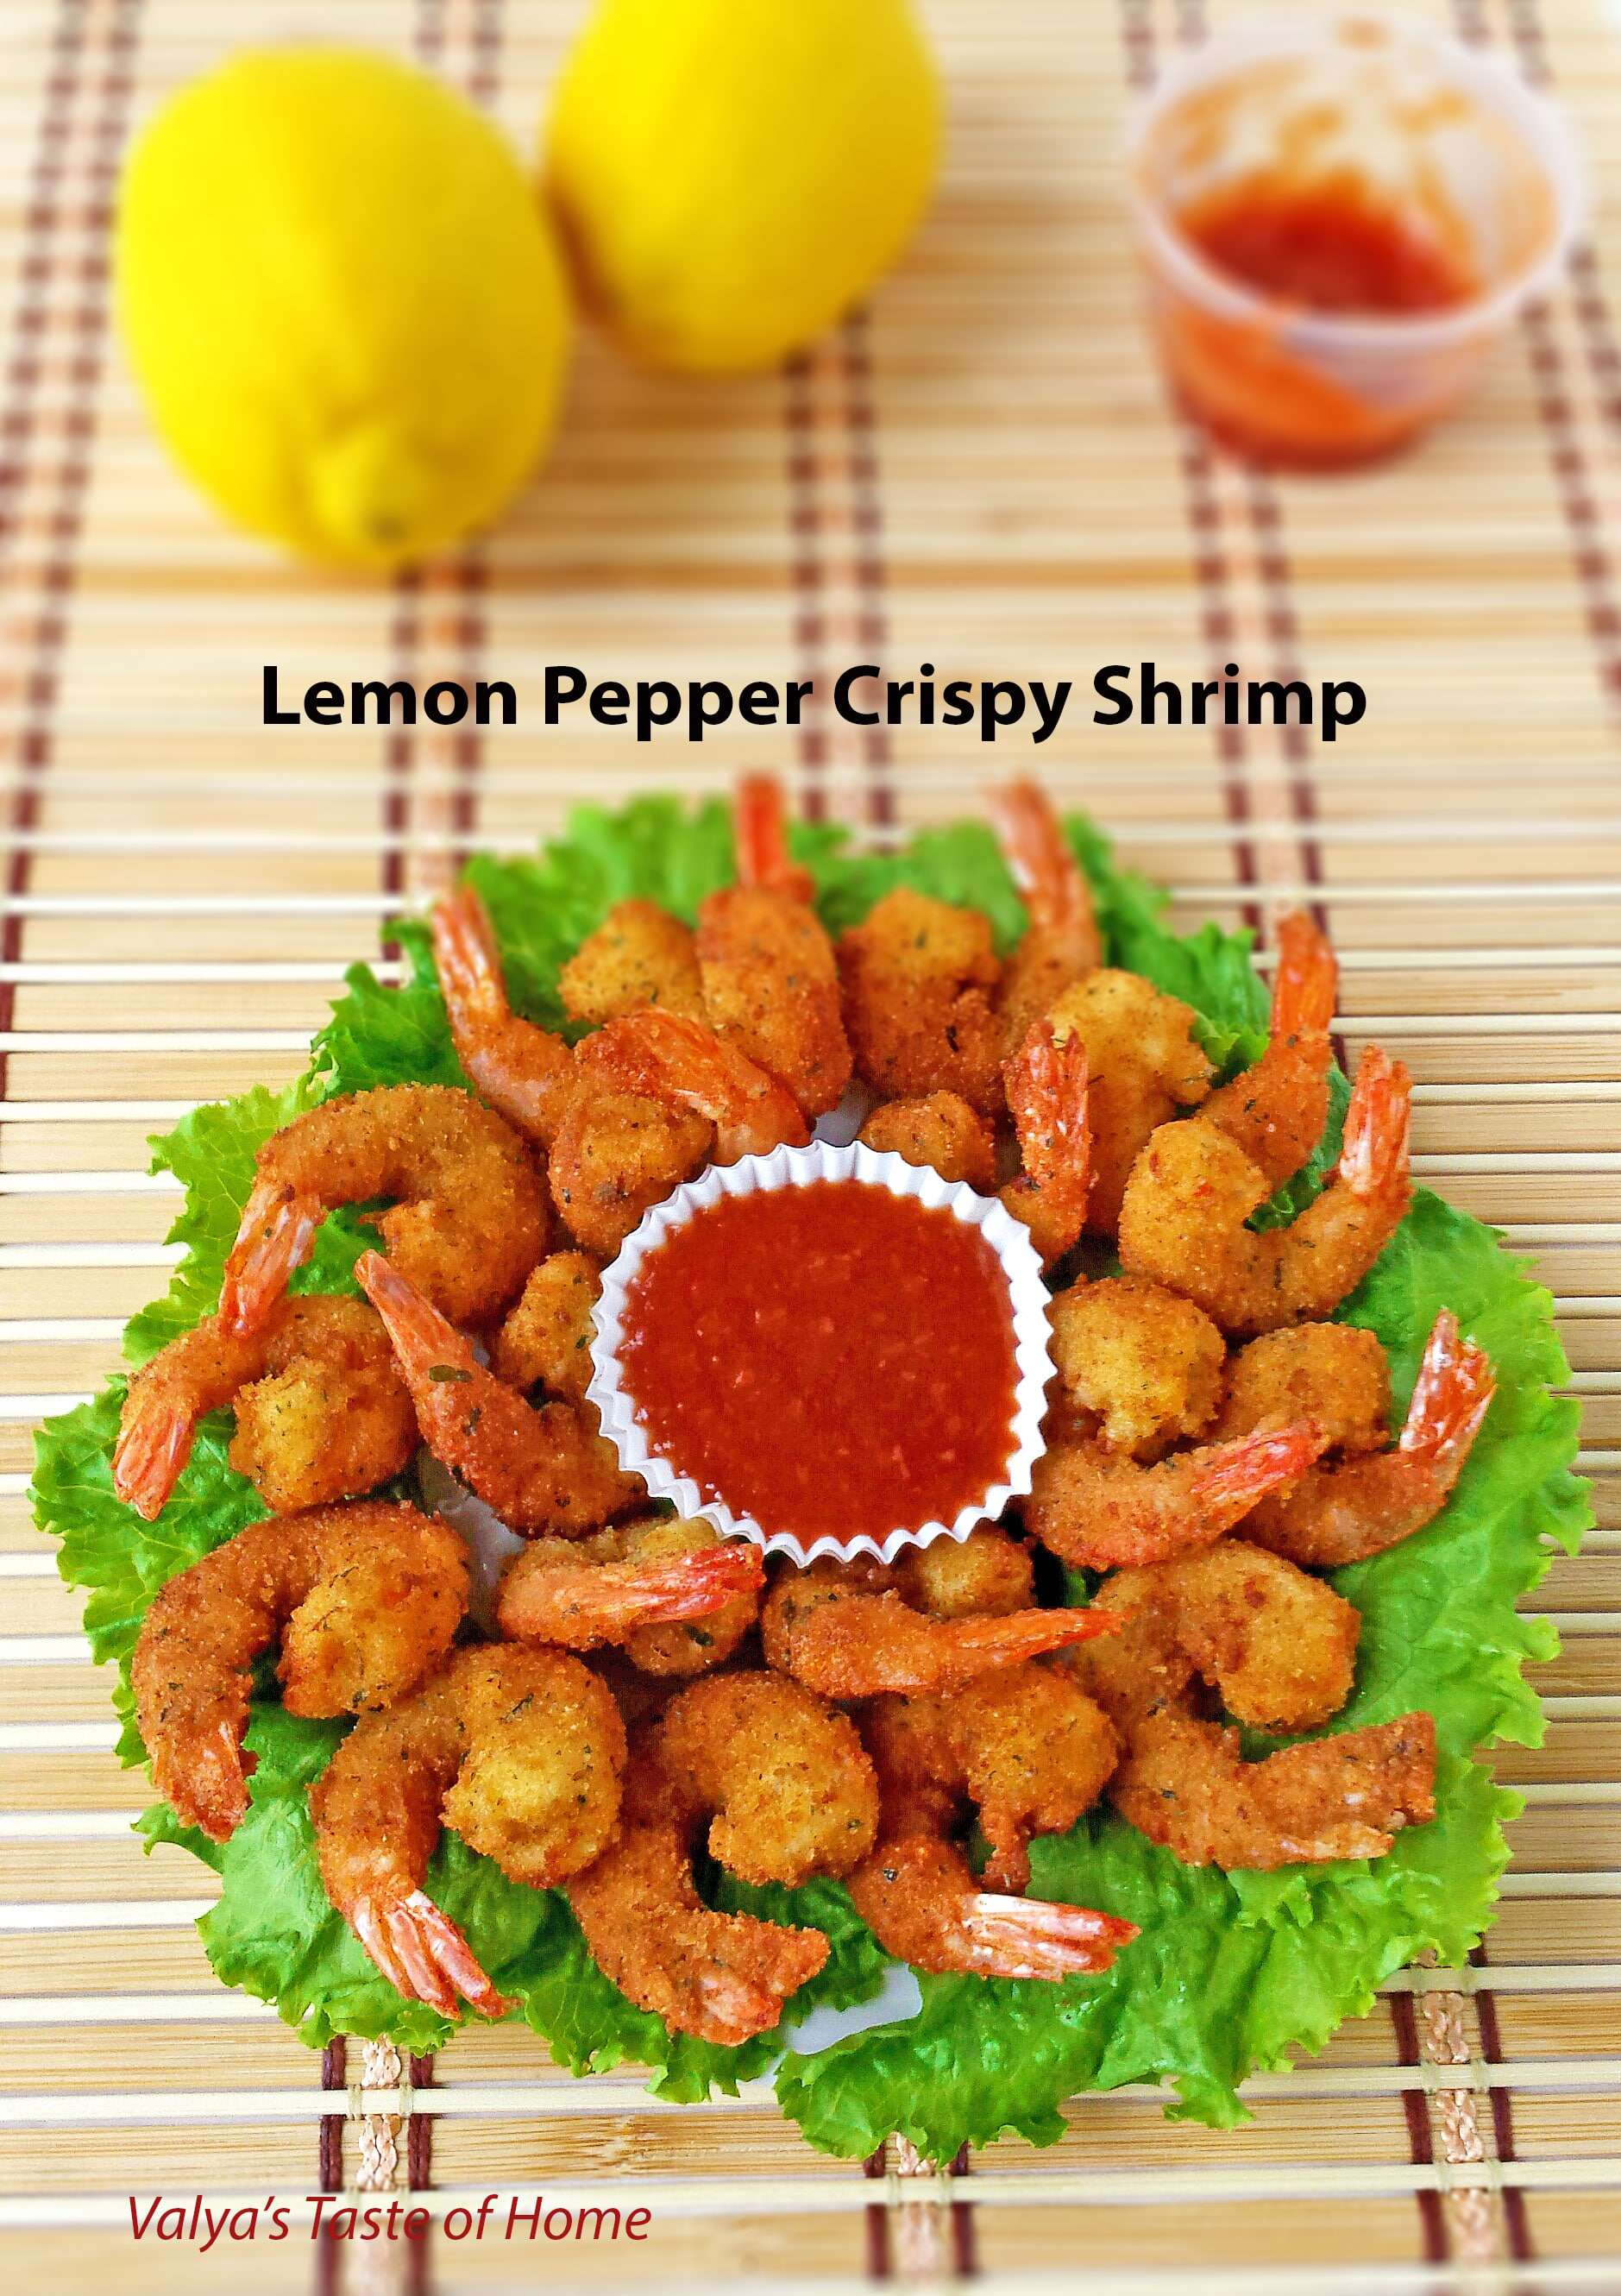 Lemon Pepper Crispy Shrimp